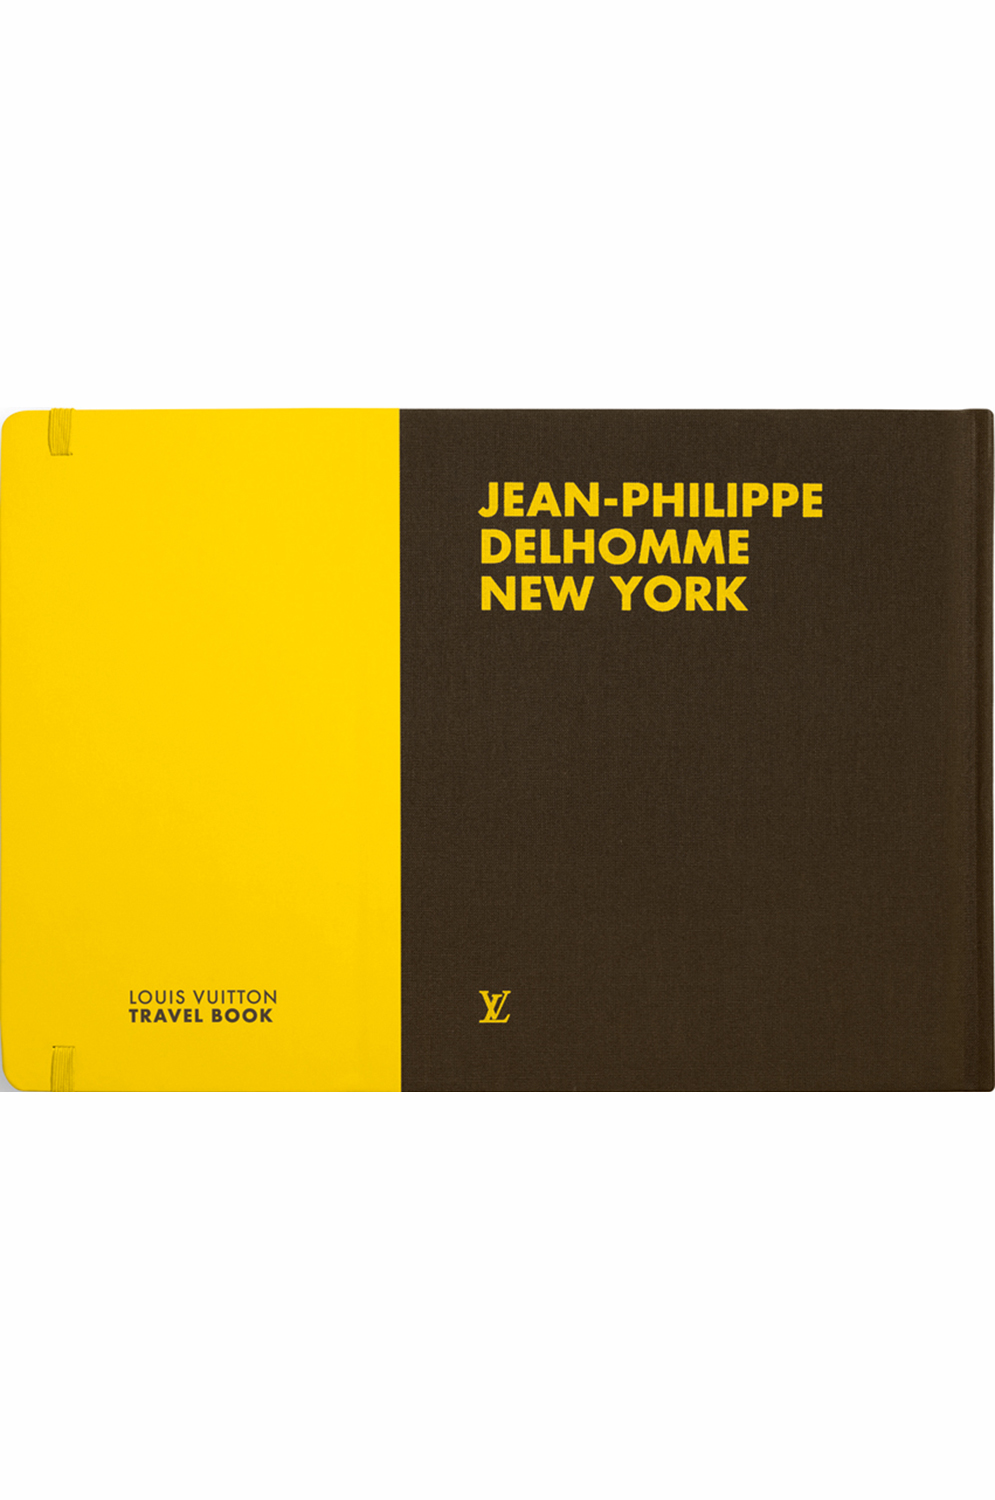 New York Travel Book  Published by Louis Vuitton  Buy from  Louis Vuitton   ​